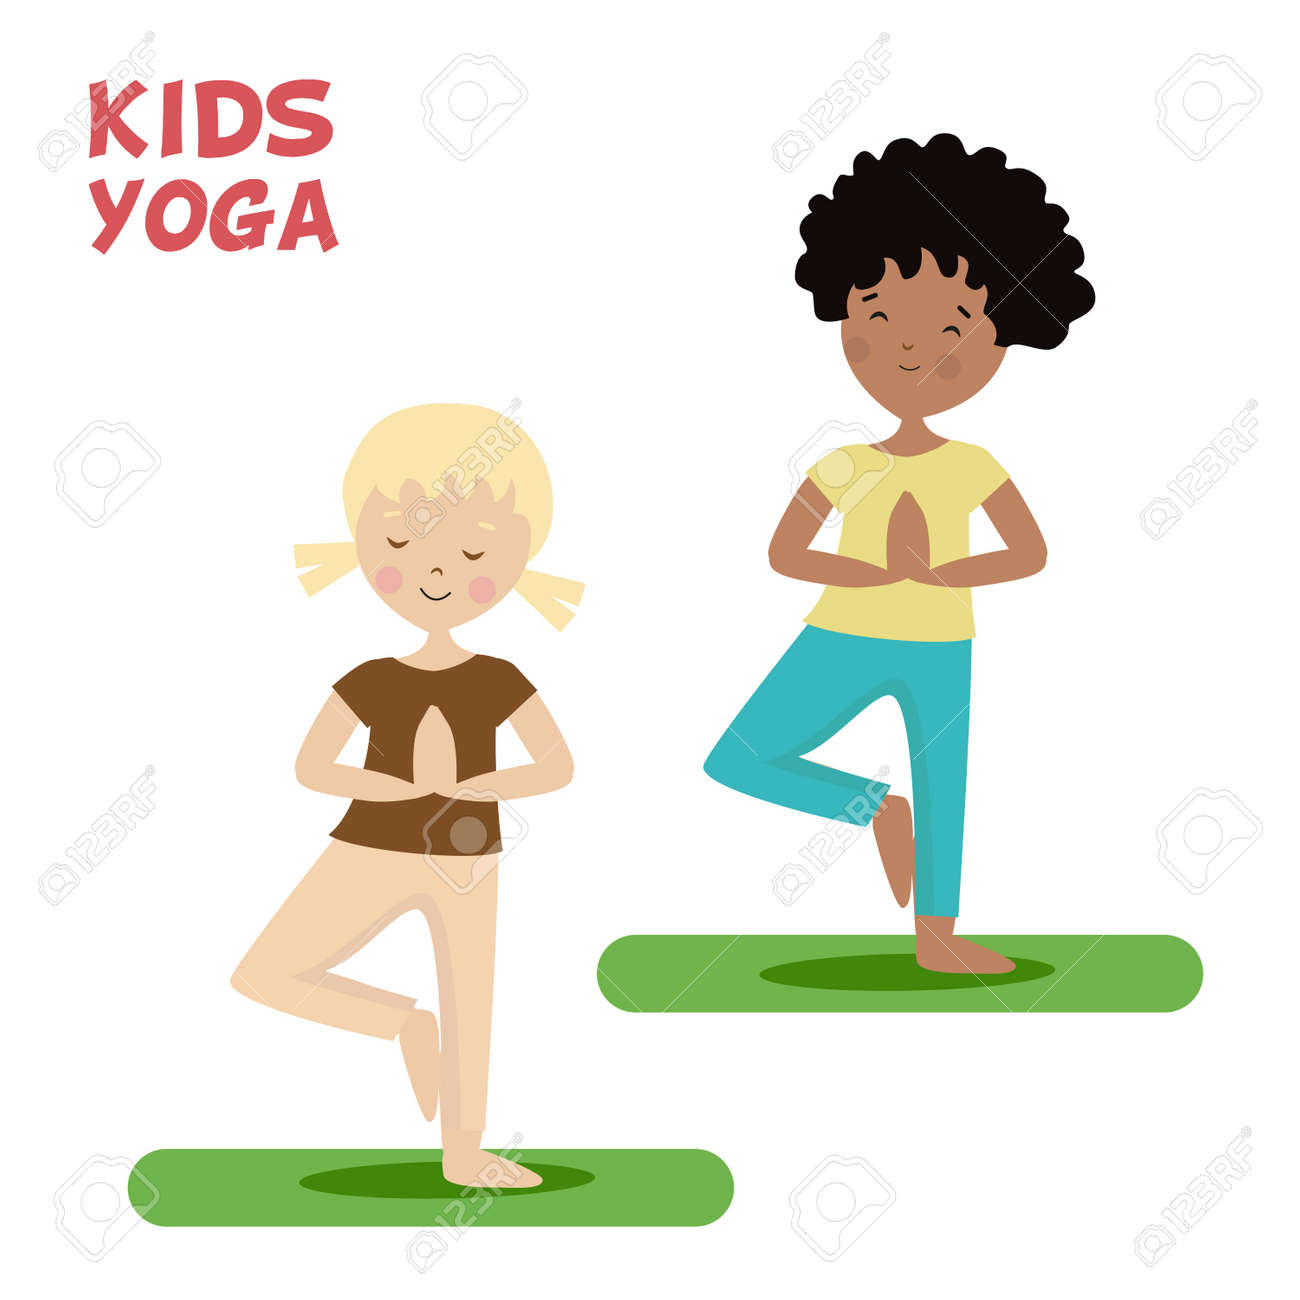 Girl And Boy Are Engaged In A Kids Yoga Sports Or Exercise Cartoon Flat